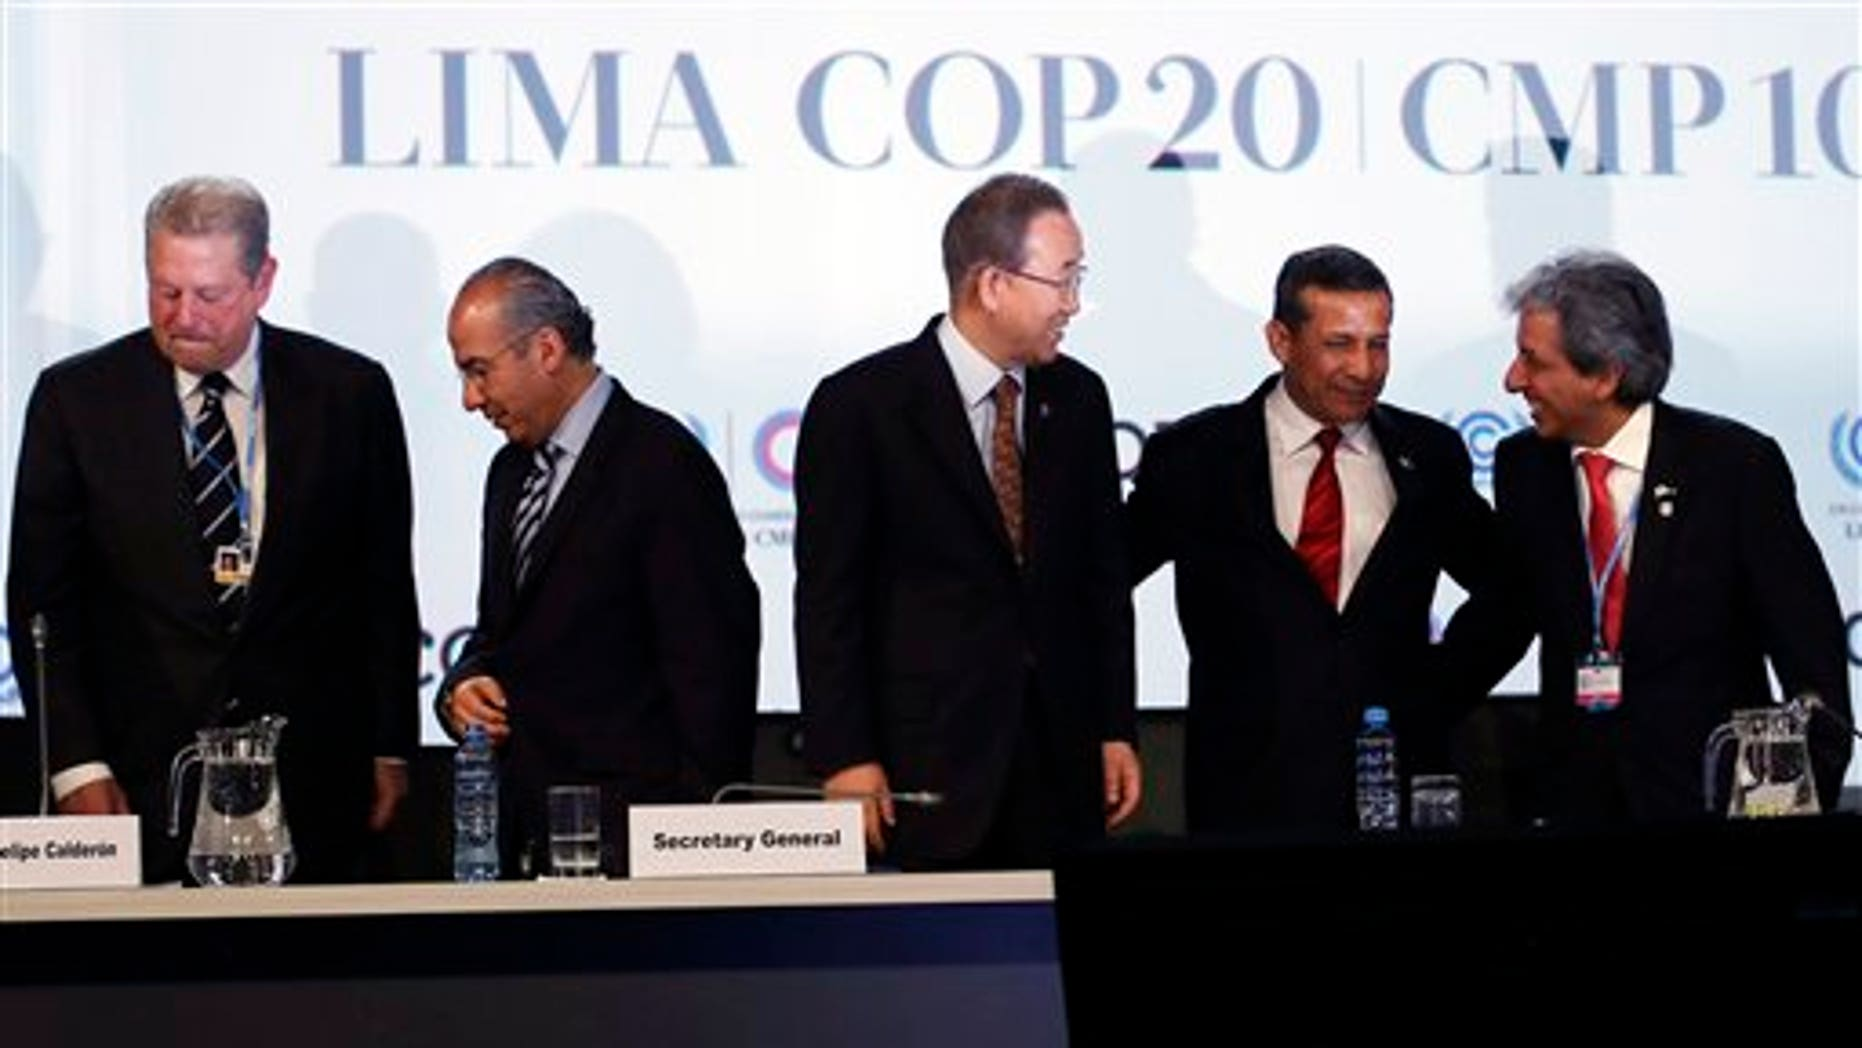 Attendees at the UN Climate Change Conference in Lima, Peru, on Thursday, Dec. 11, 2014, included, from left: Former Vice President of the United States Al Gore; Former President of Mexico Felipe Calderon; UN Secretary General Ban Ki-moon; Peru's President Ollanta Humala and Peru's Environment Minister and President of the COP, Manuel Pulgar Vidal.. (AP Photo/Juan Karita)